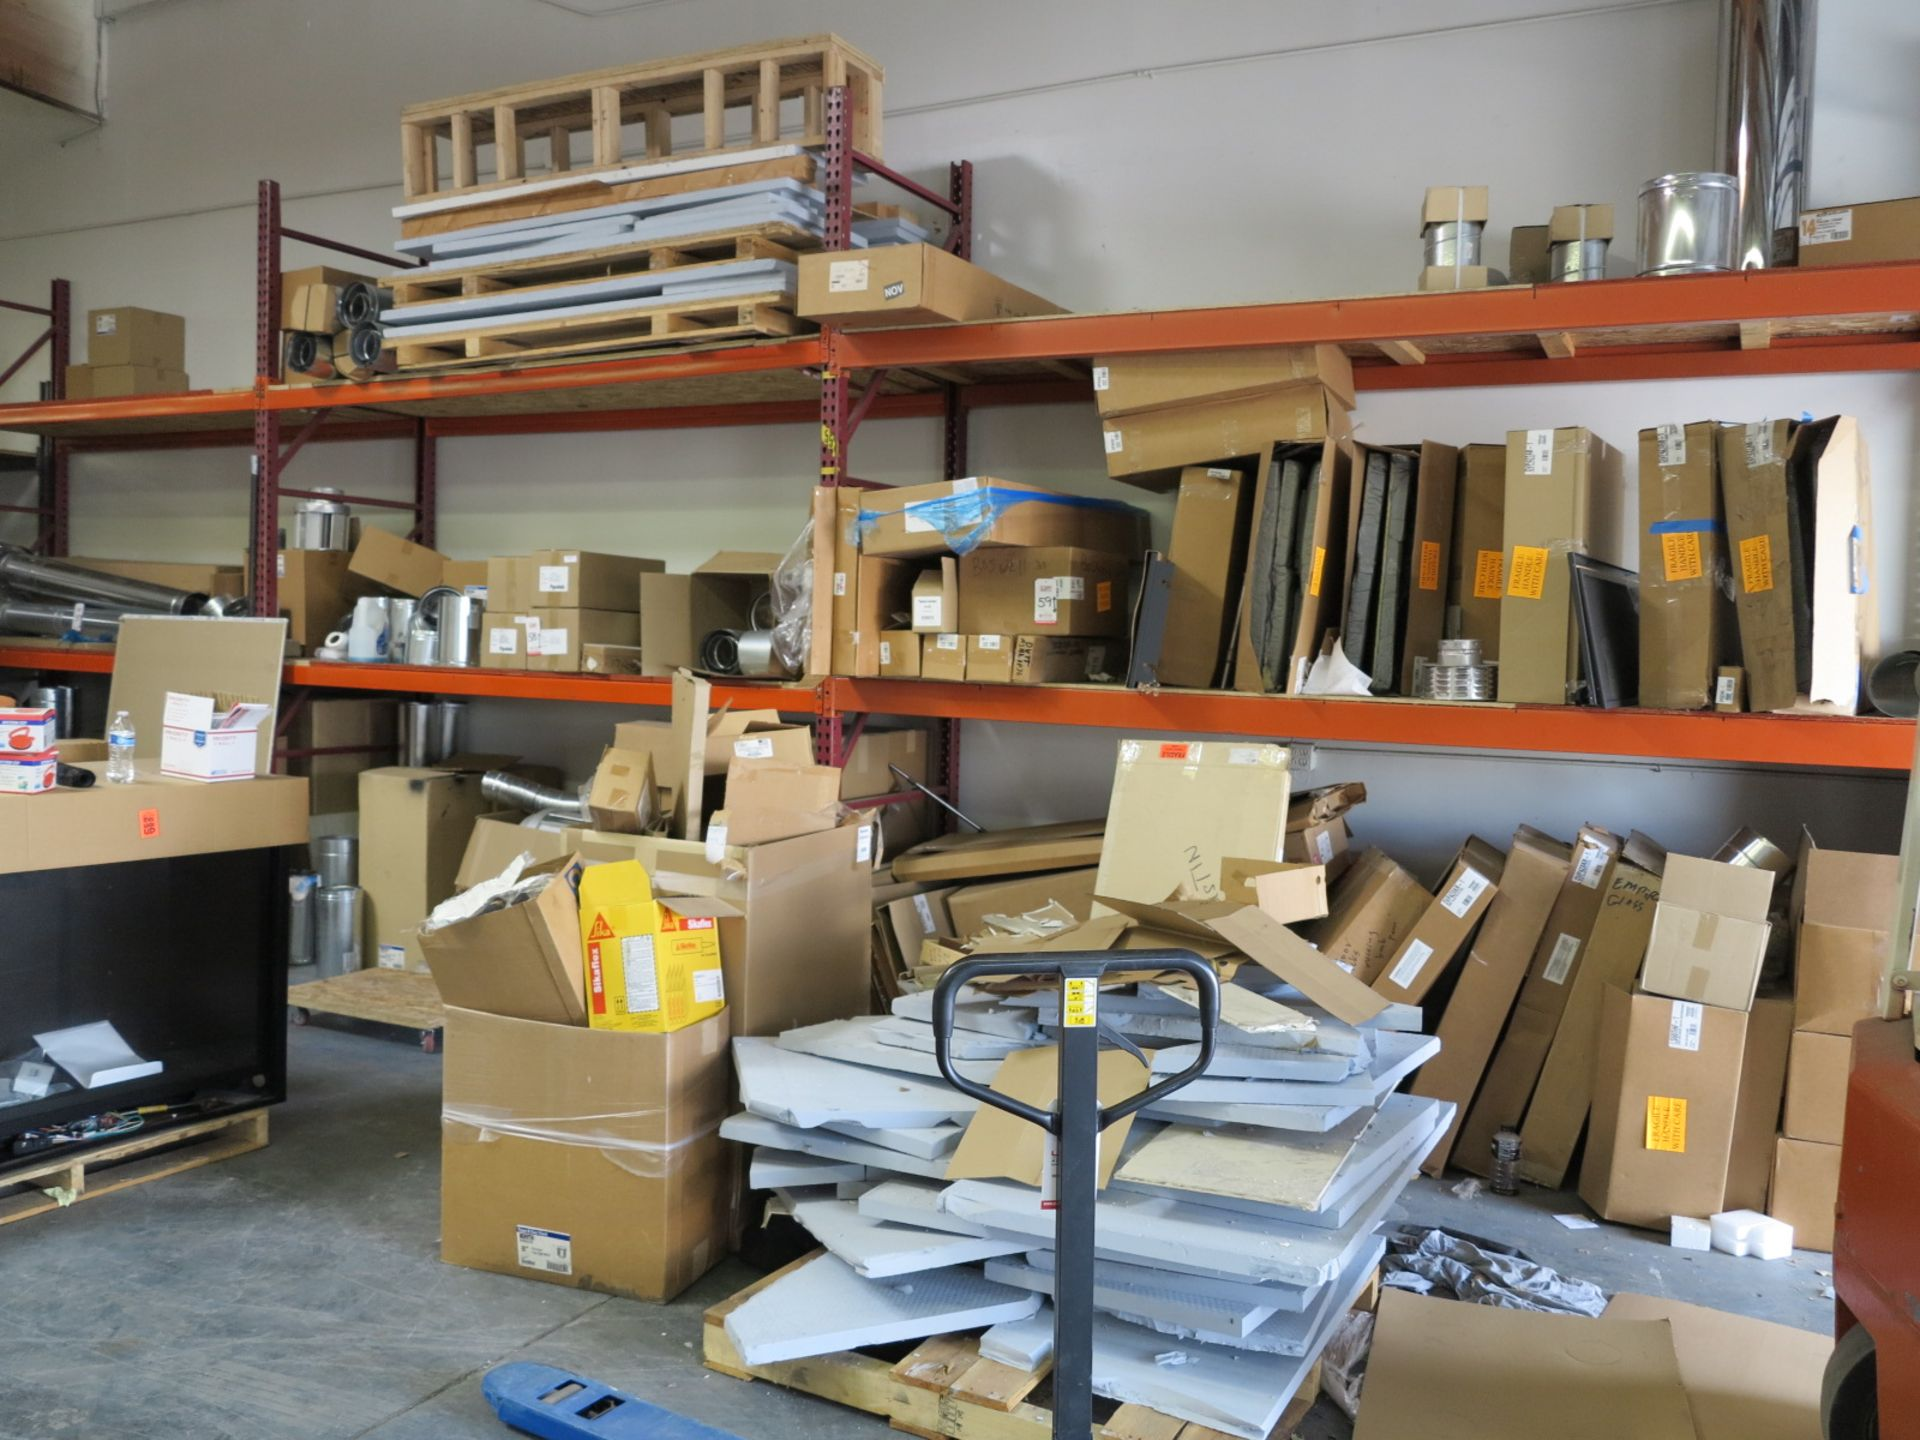 LOT - (5) SECTIONS OF PALLET RACKING, 9'-10' BEAMS, 12' UPRIGHTS, CONTENTS NOT INCLUDED - Image 2 of 2